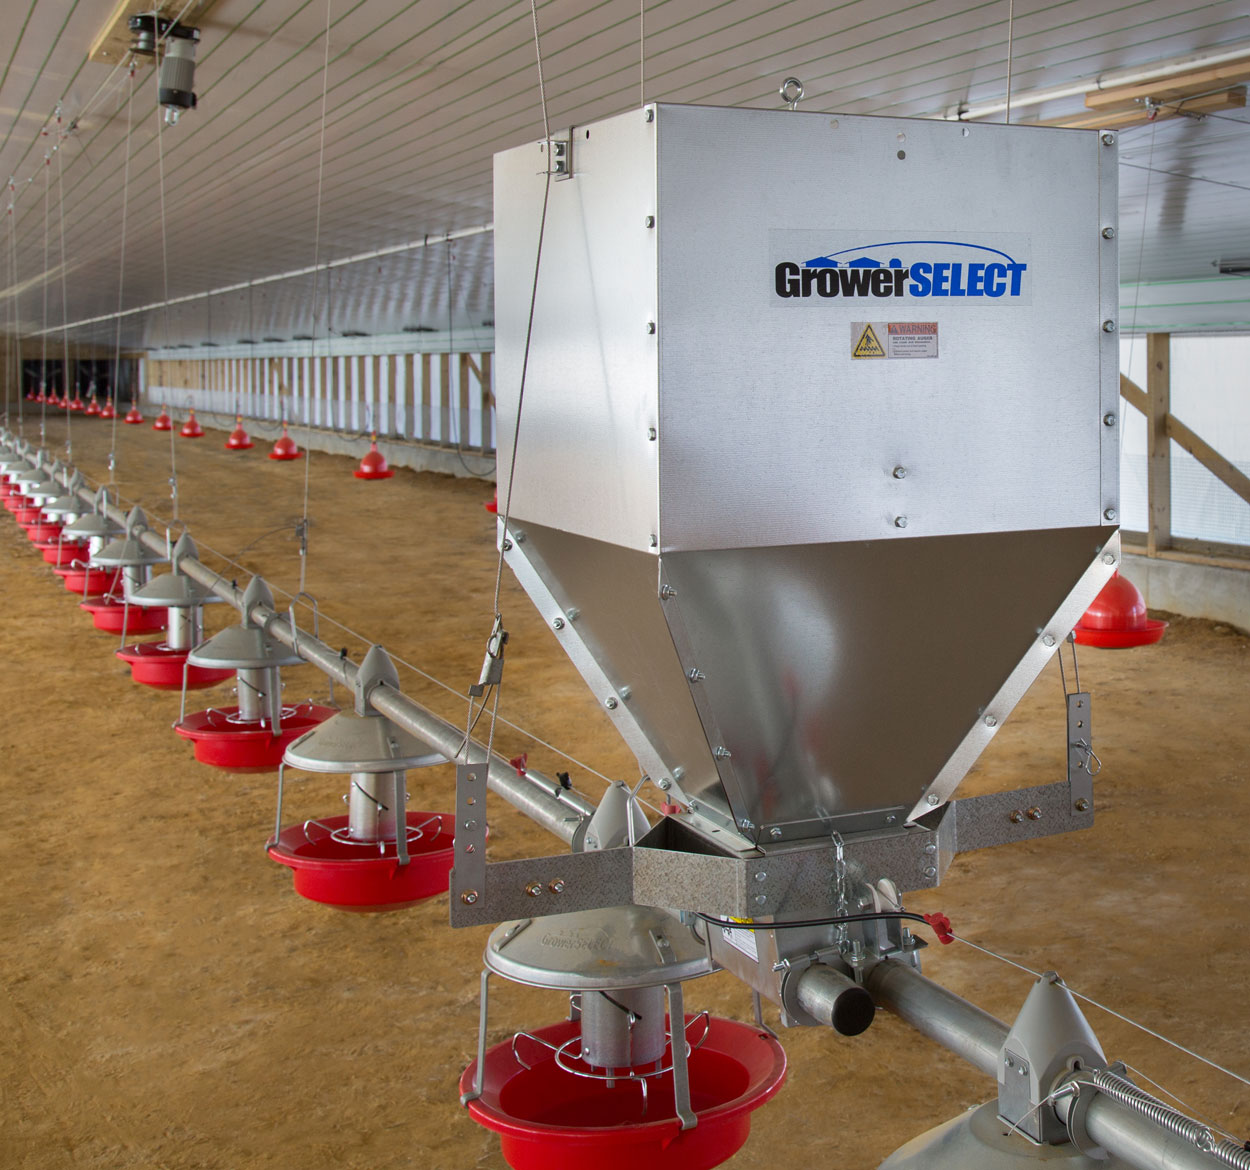 GrowerSELECT® Adult Turkey Feeders and GrowerSELECT poultry feed system components are designed and manufactured to provide reliable performance and conversion potential flock after flock.